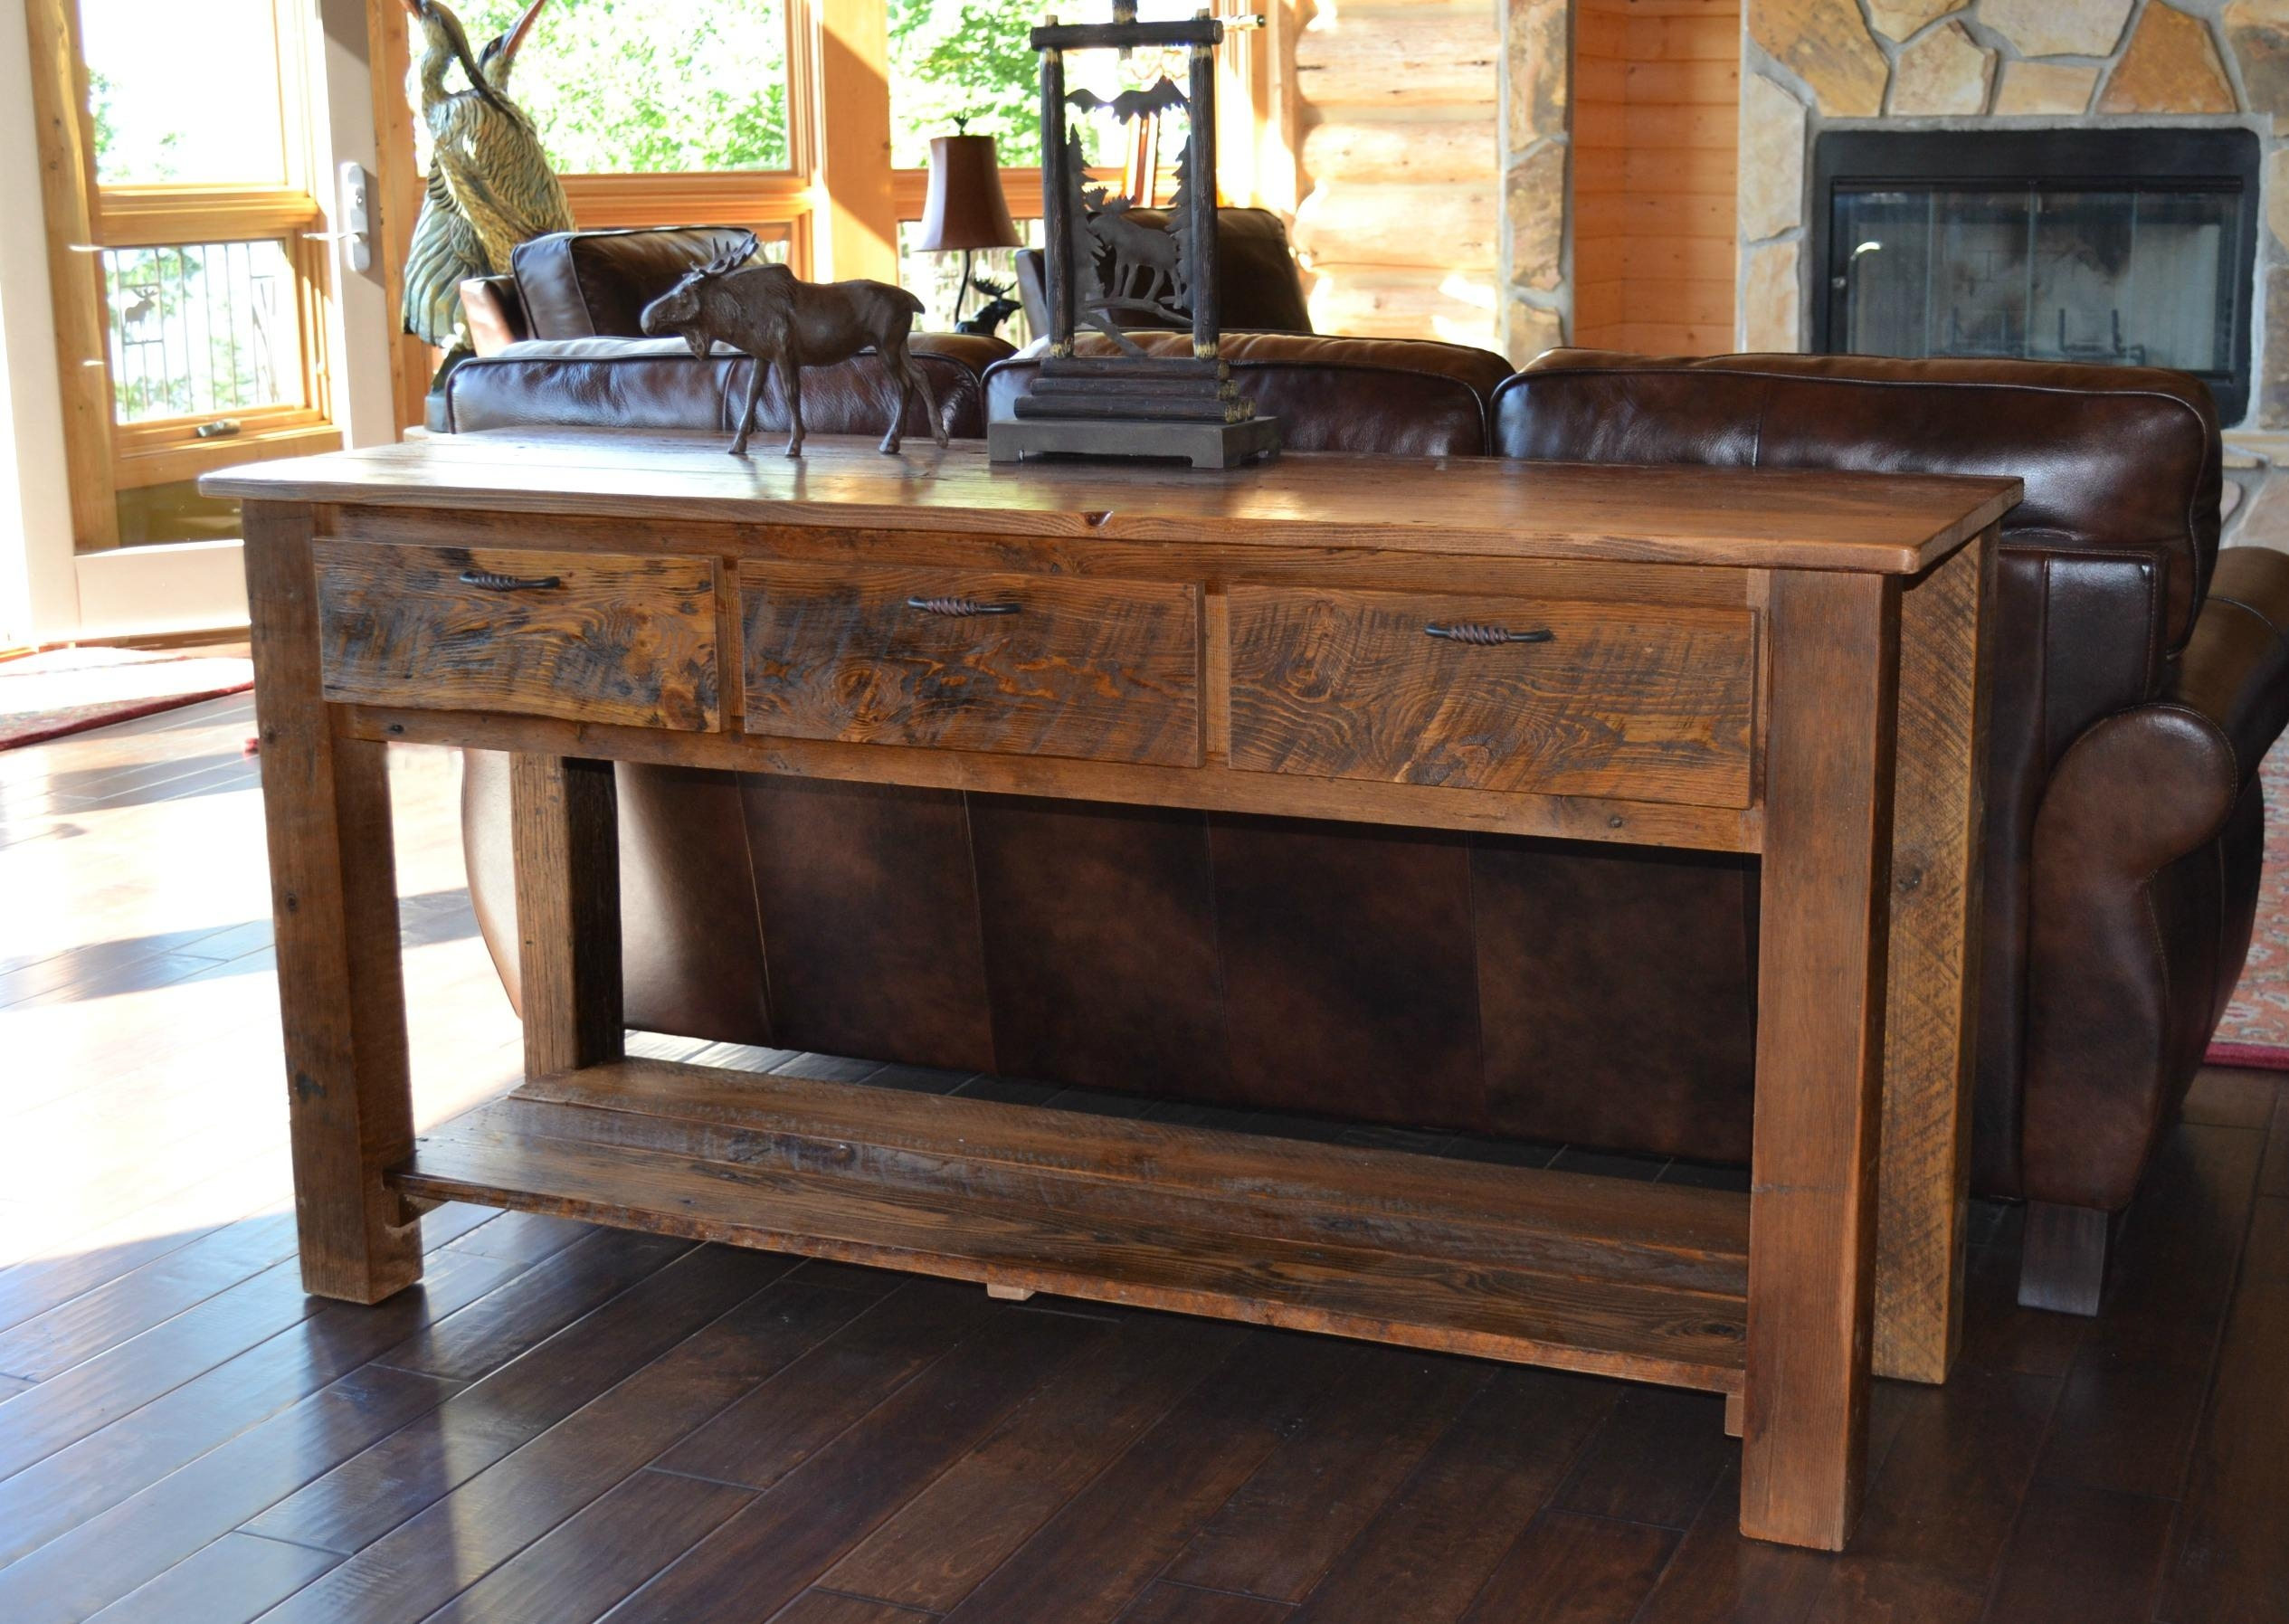 Rustic Sofa Table For Classic Room | Beauty Home Decor For Asian Sofa Tables (Image 17 of 20)